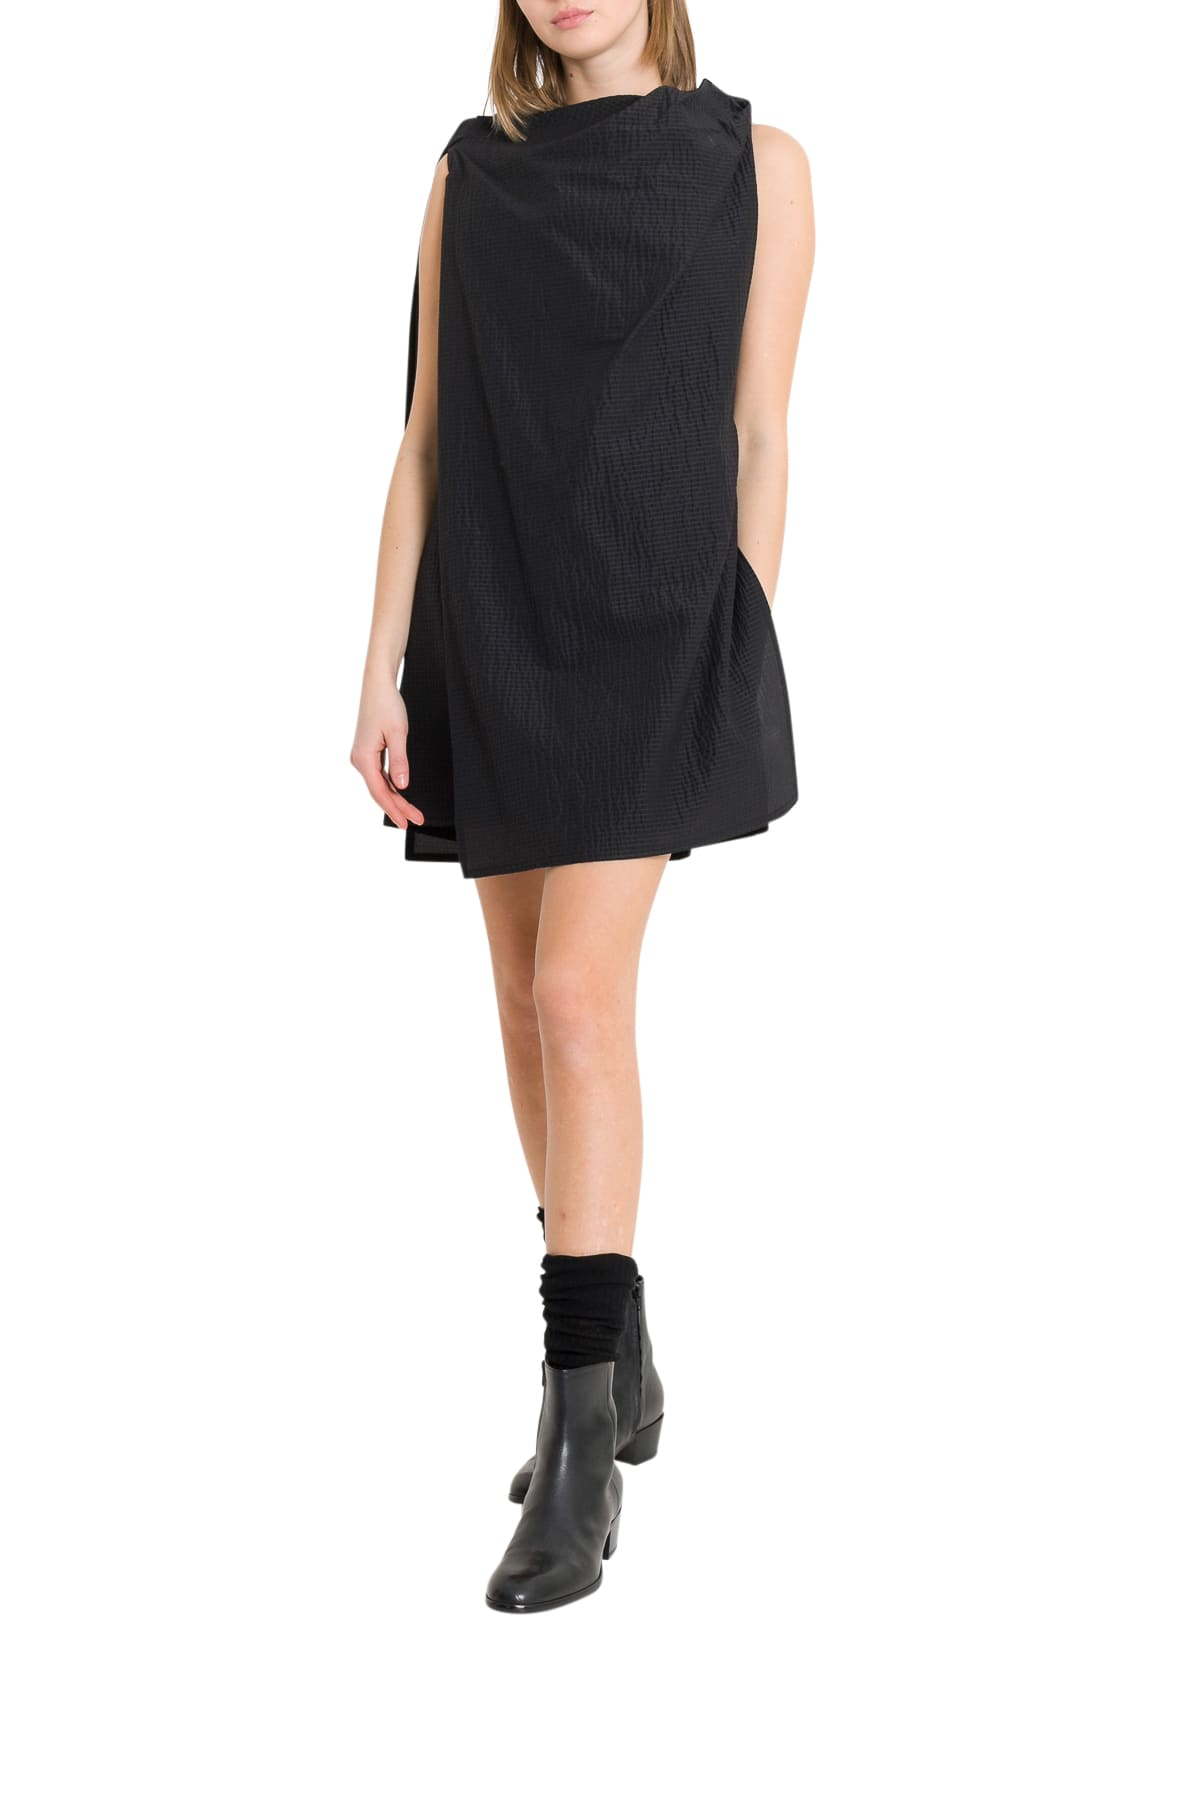 Buy Rick Owens Layering Tunic Dress online, shop Rick Owens with free shipping